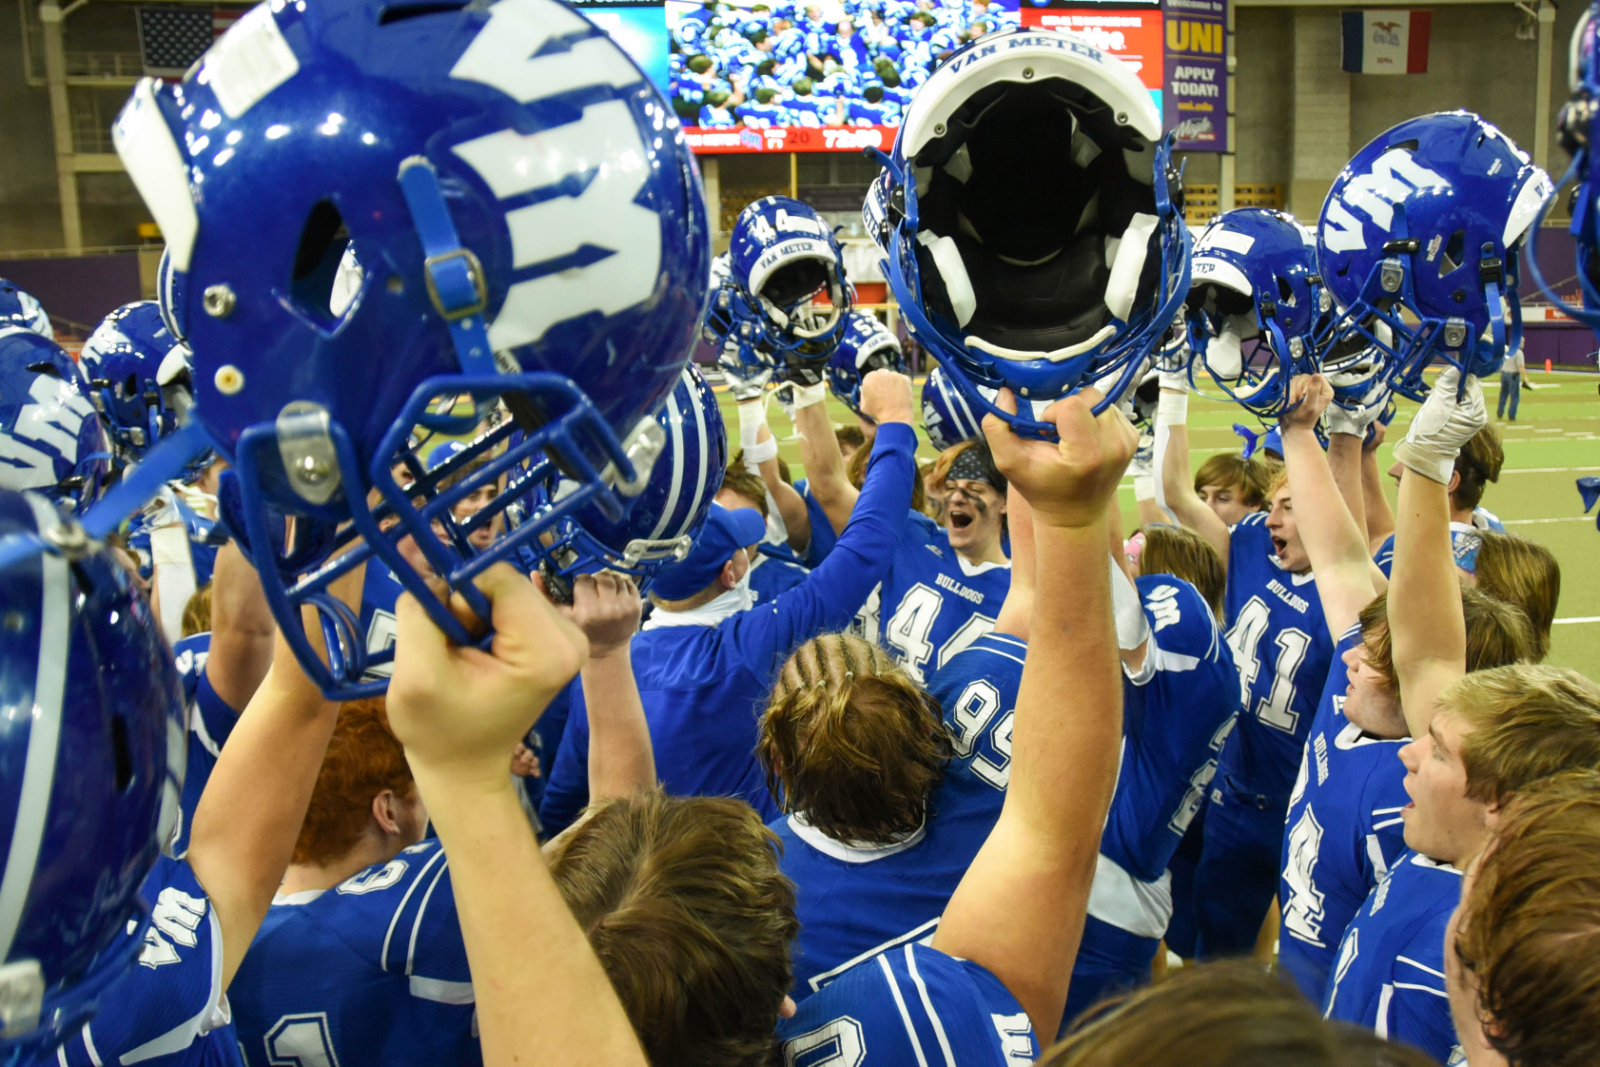 Bulldogs Defeat South Central Calhoun 20-12 in State Semifinals